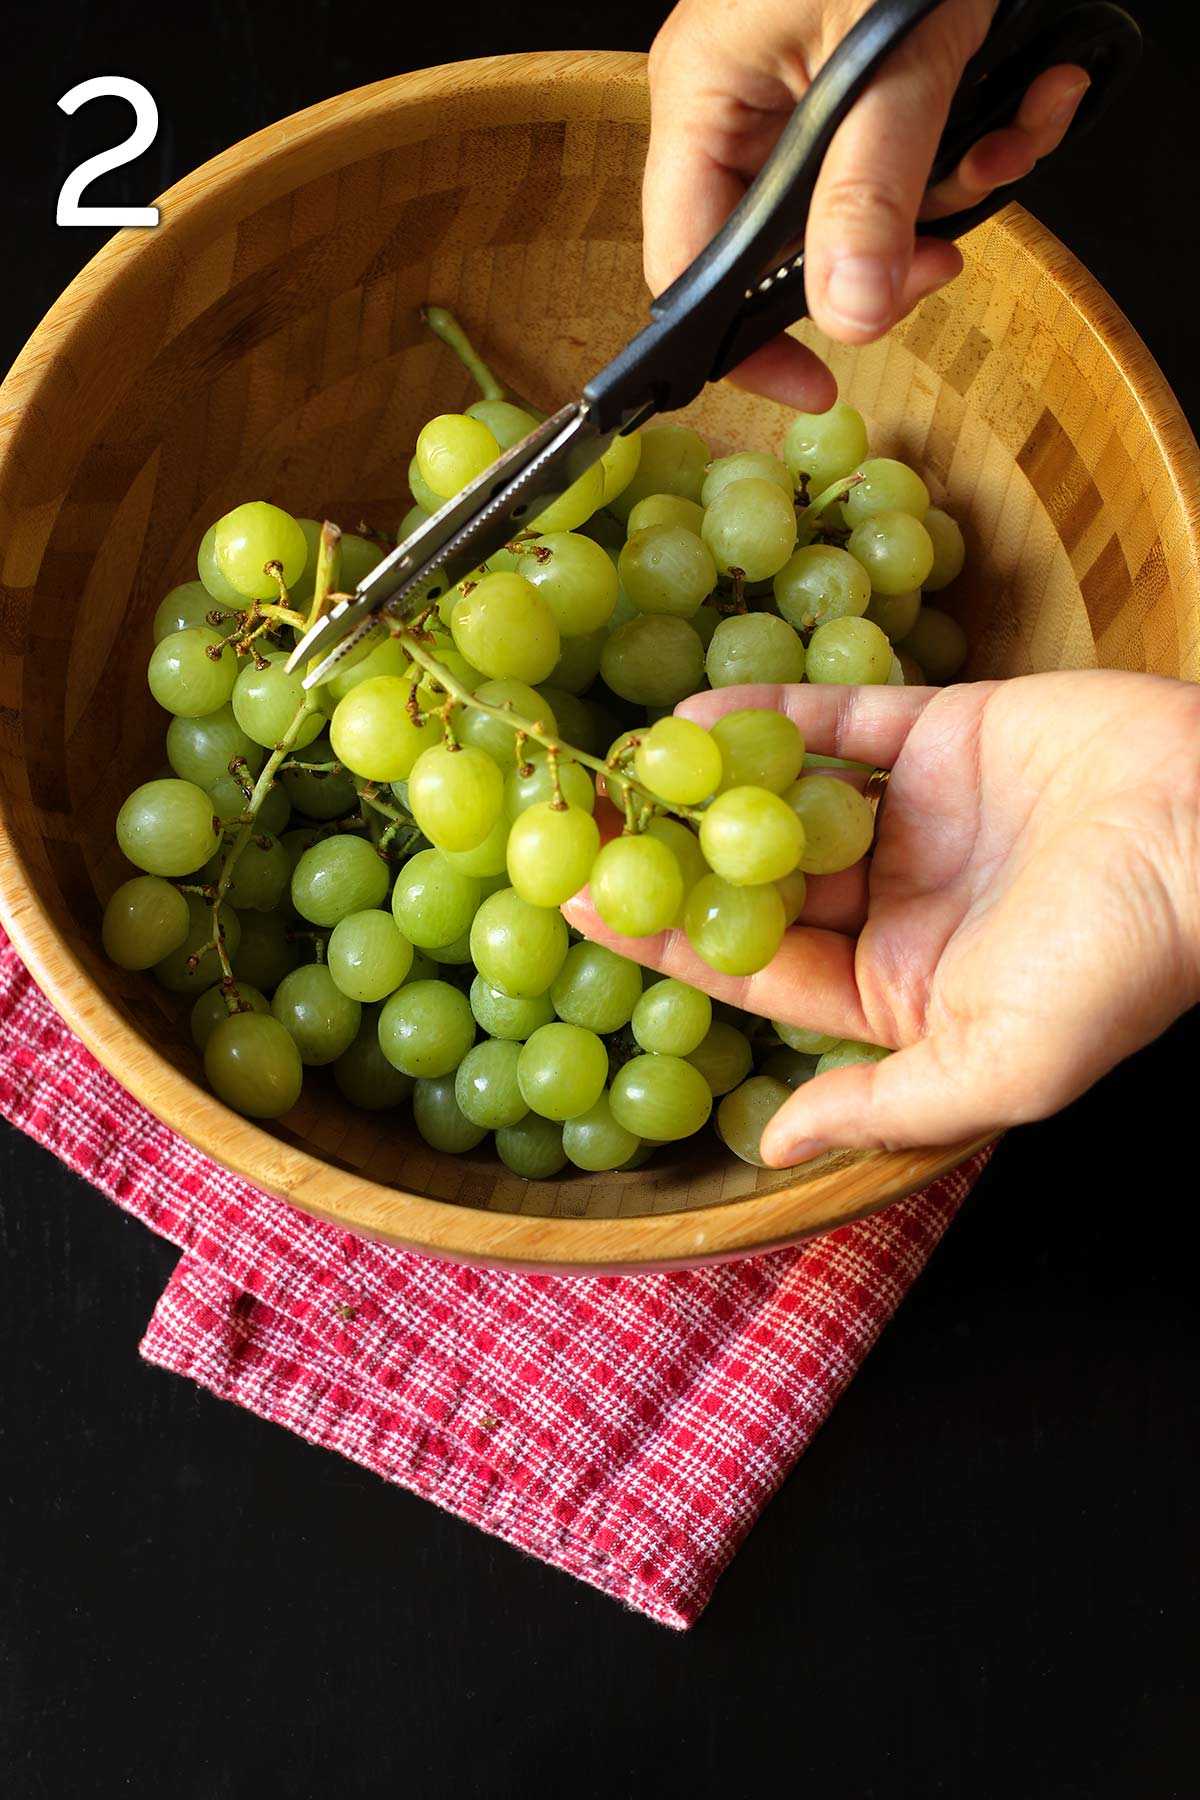 woman cutting off a cluster of grapes into the palm of her hand with kitchen shears.